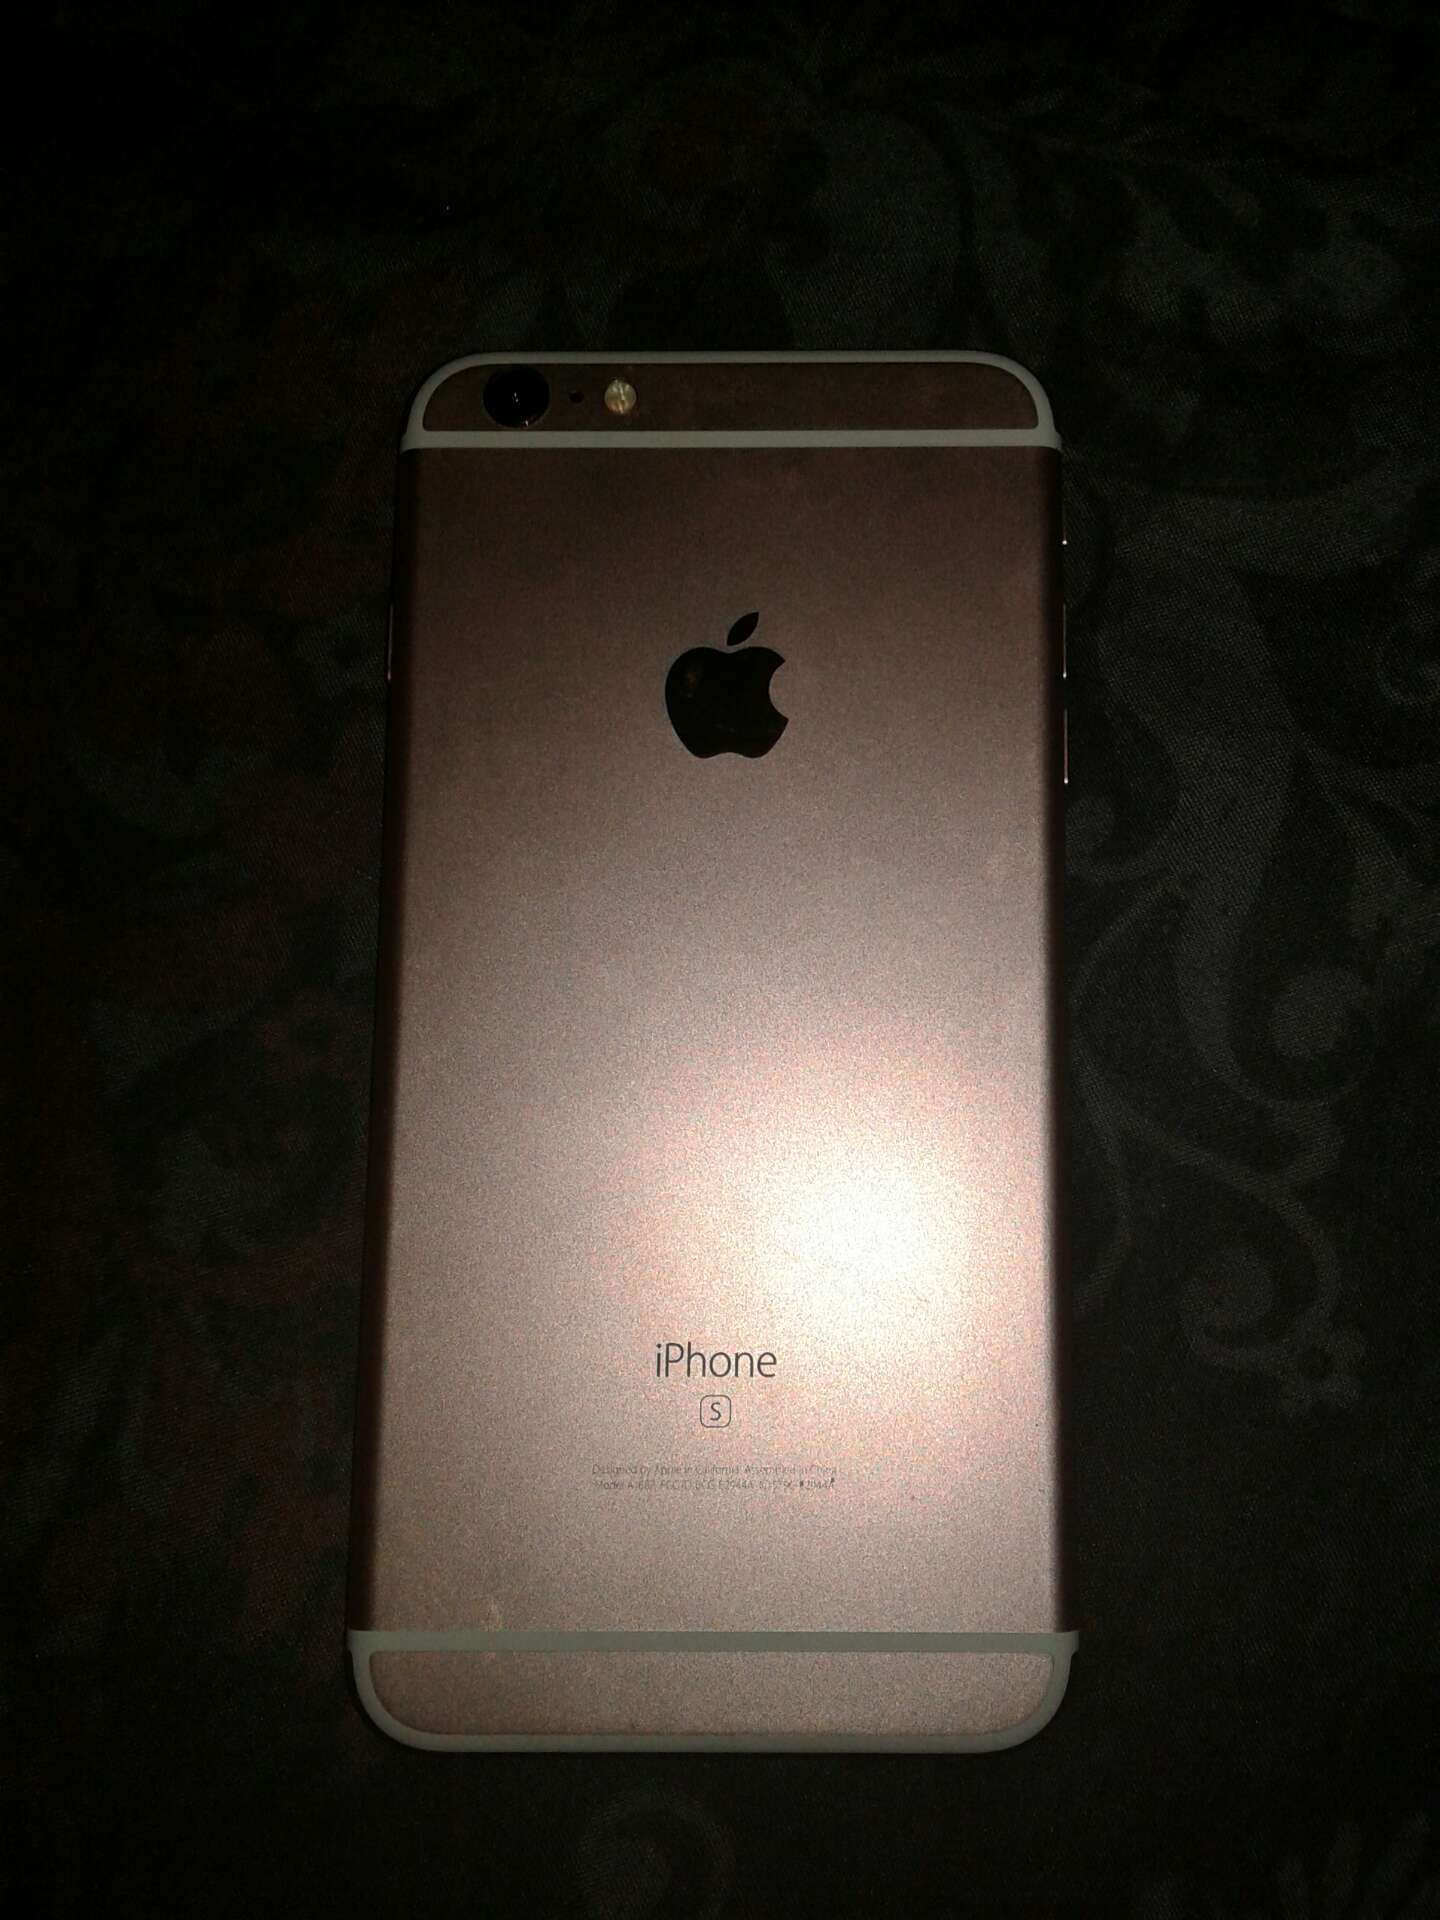 iphone 6 plus s rose gold for sale in atlanta ga 5miles. Black Bedroom Furniture Sets. Home Design Ideas